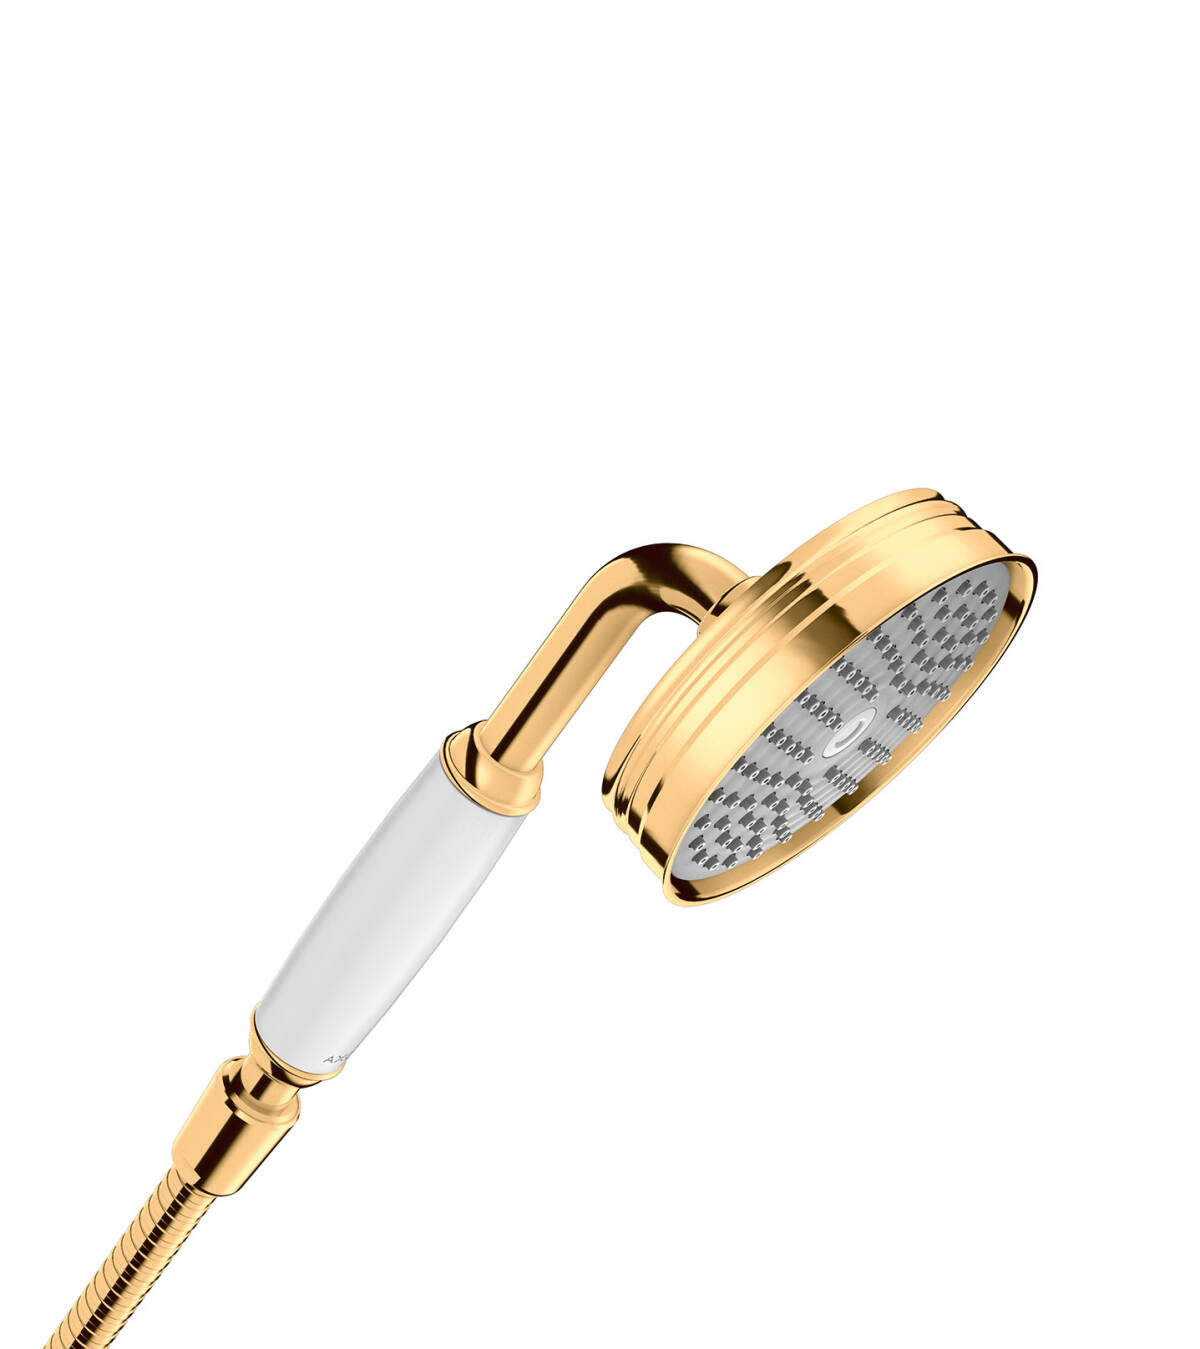 Hand shower 100 1jet, Polished Brass, 16320930